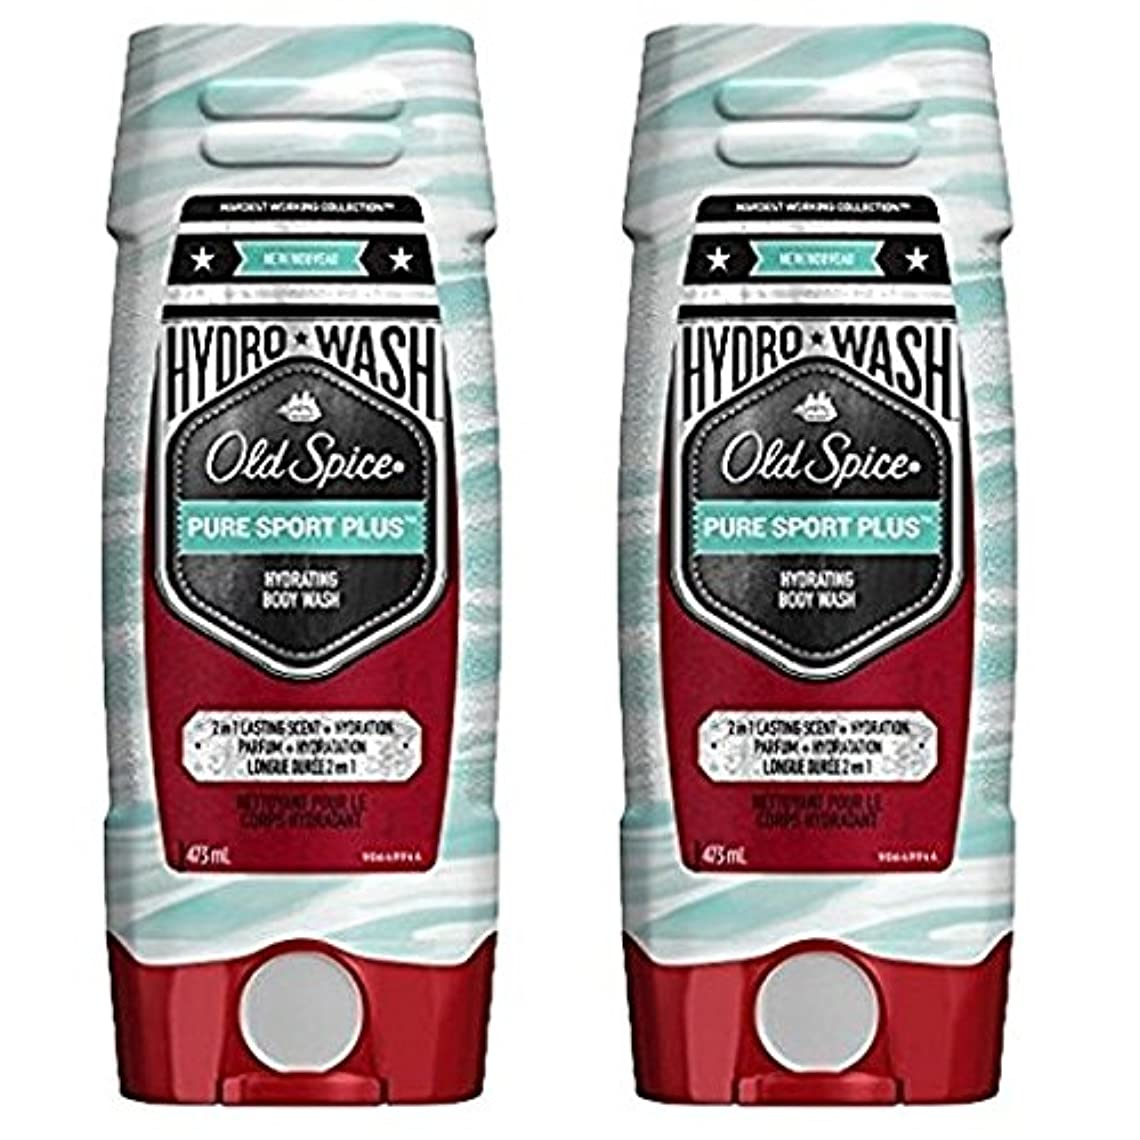 ファーザーファージュでクリスマス海外直送品 Old Spice Hydro Wash Body Wash Hardest Working Collection Pure Sport Plus 16 Oz, 2 Pack ボディーソープ 2本